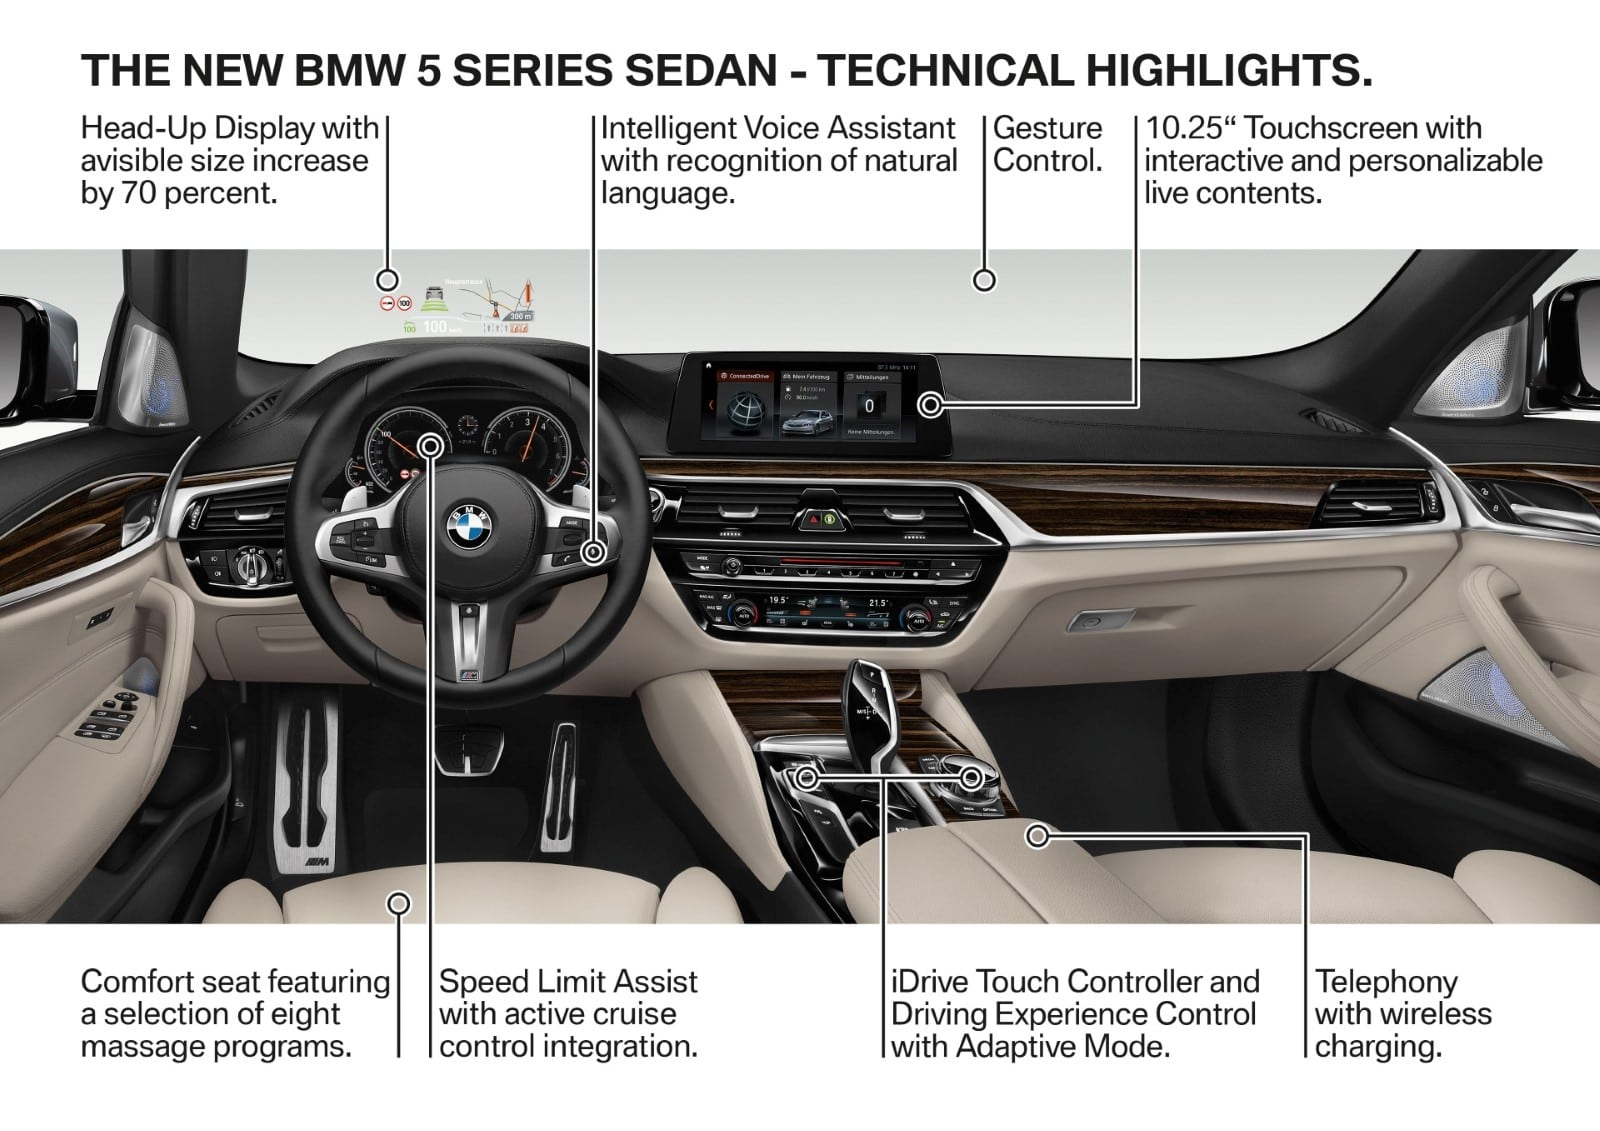 BMW 5 SerieBMW 5 Series G30 2017 Technical Informations G30 2017 Technical Information